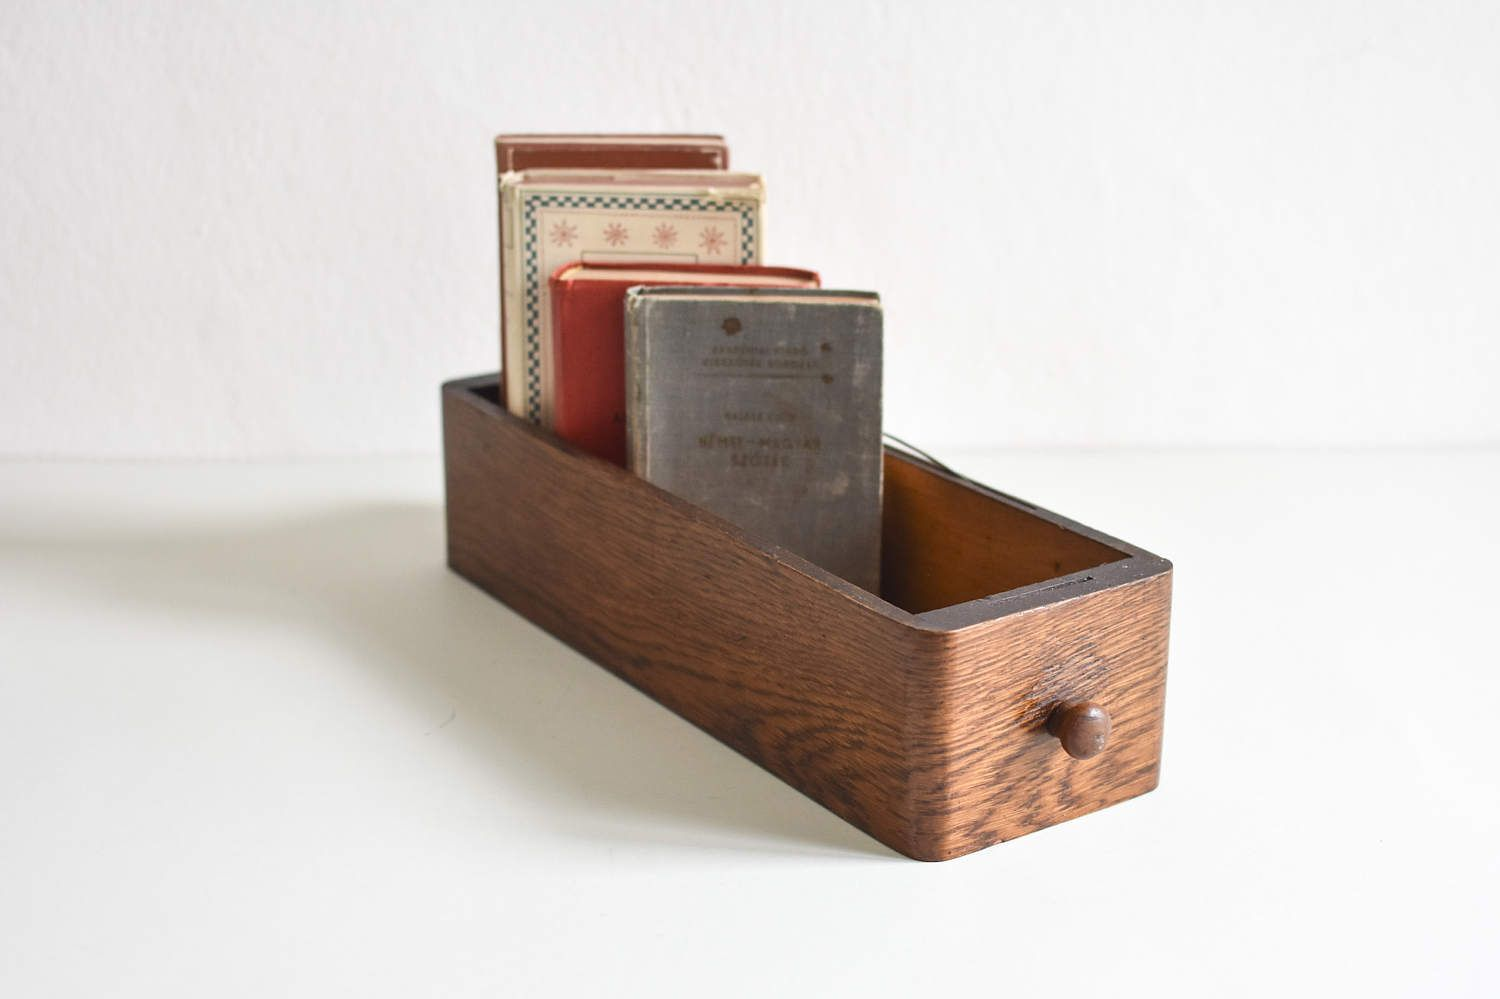 Kisten Aus Holz Vintage Drawer Card File Box Wooden Box Wooden Drawer Vintage